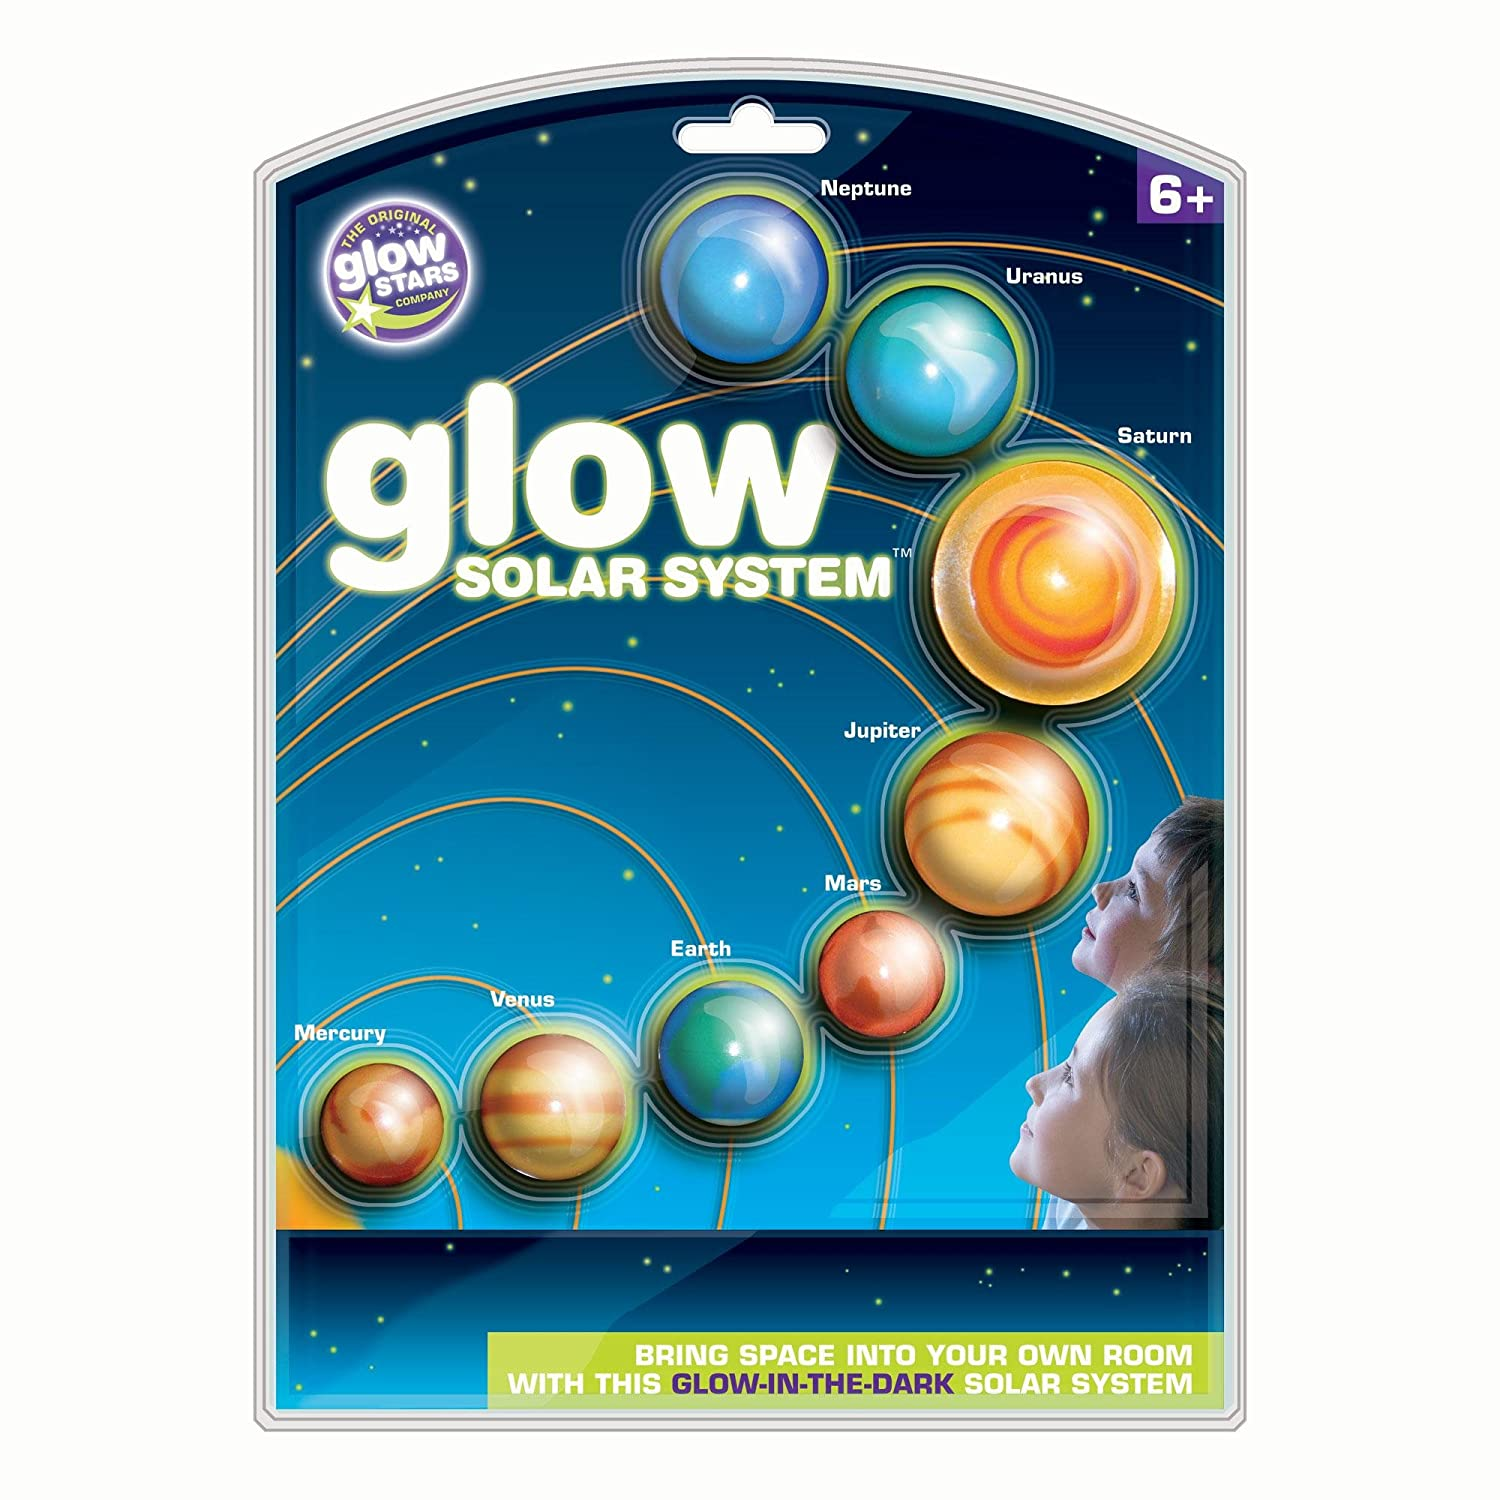 The Original Glowstars Company Glow Solar System  Amazon co uk  Toys   Games. The Original Glowstars Company Glow Solar System  Amazon co uk